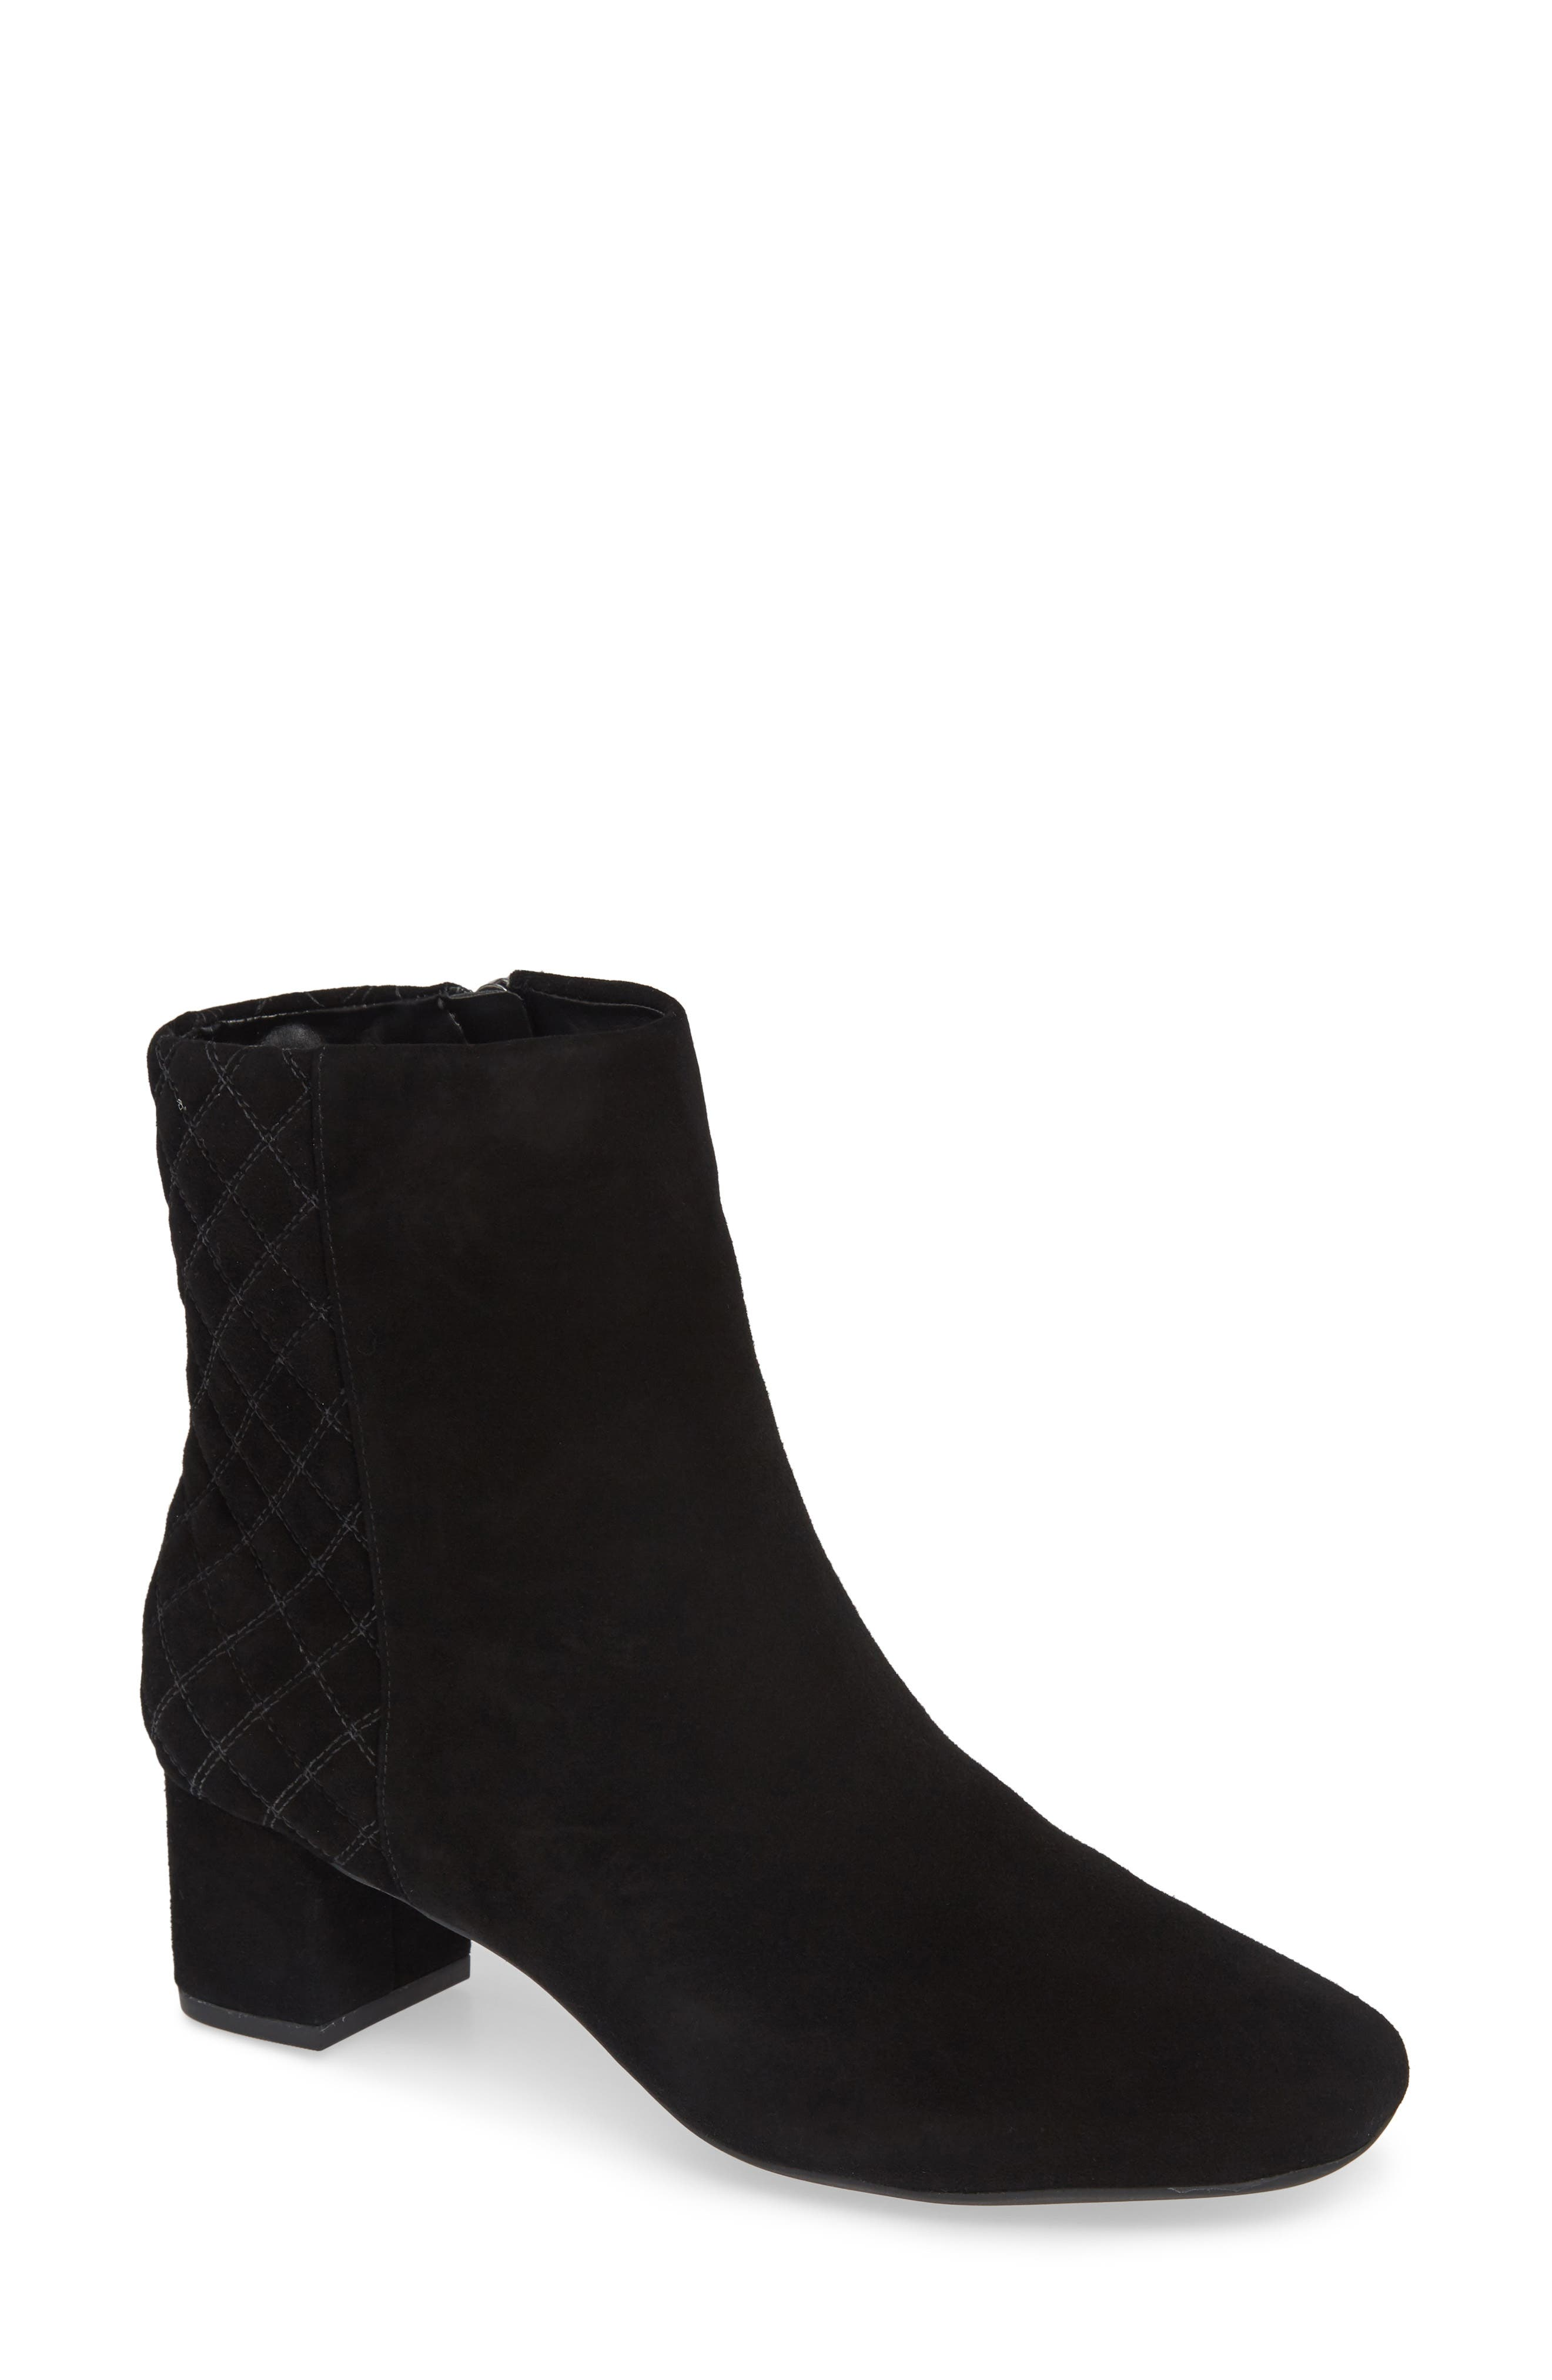 Tealia Luck Bootie,                             Main thumbnail 1, color,                             BLACK SUEDE